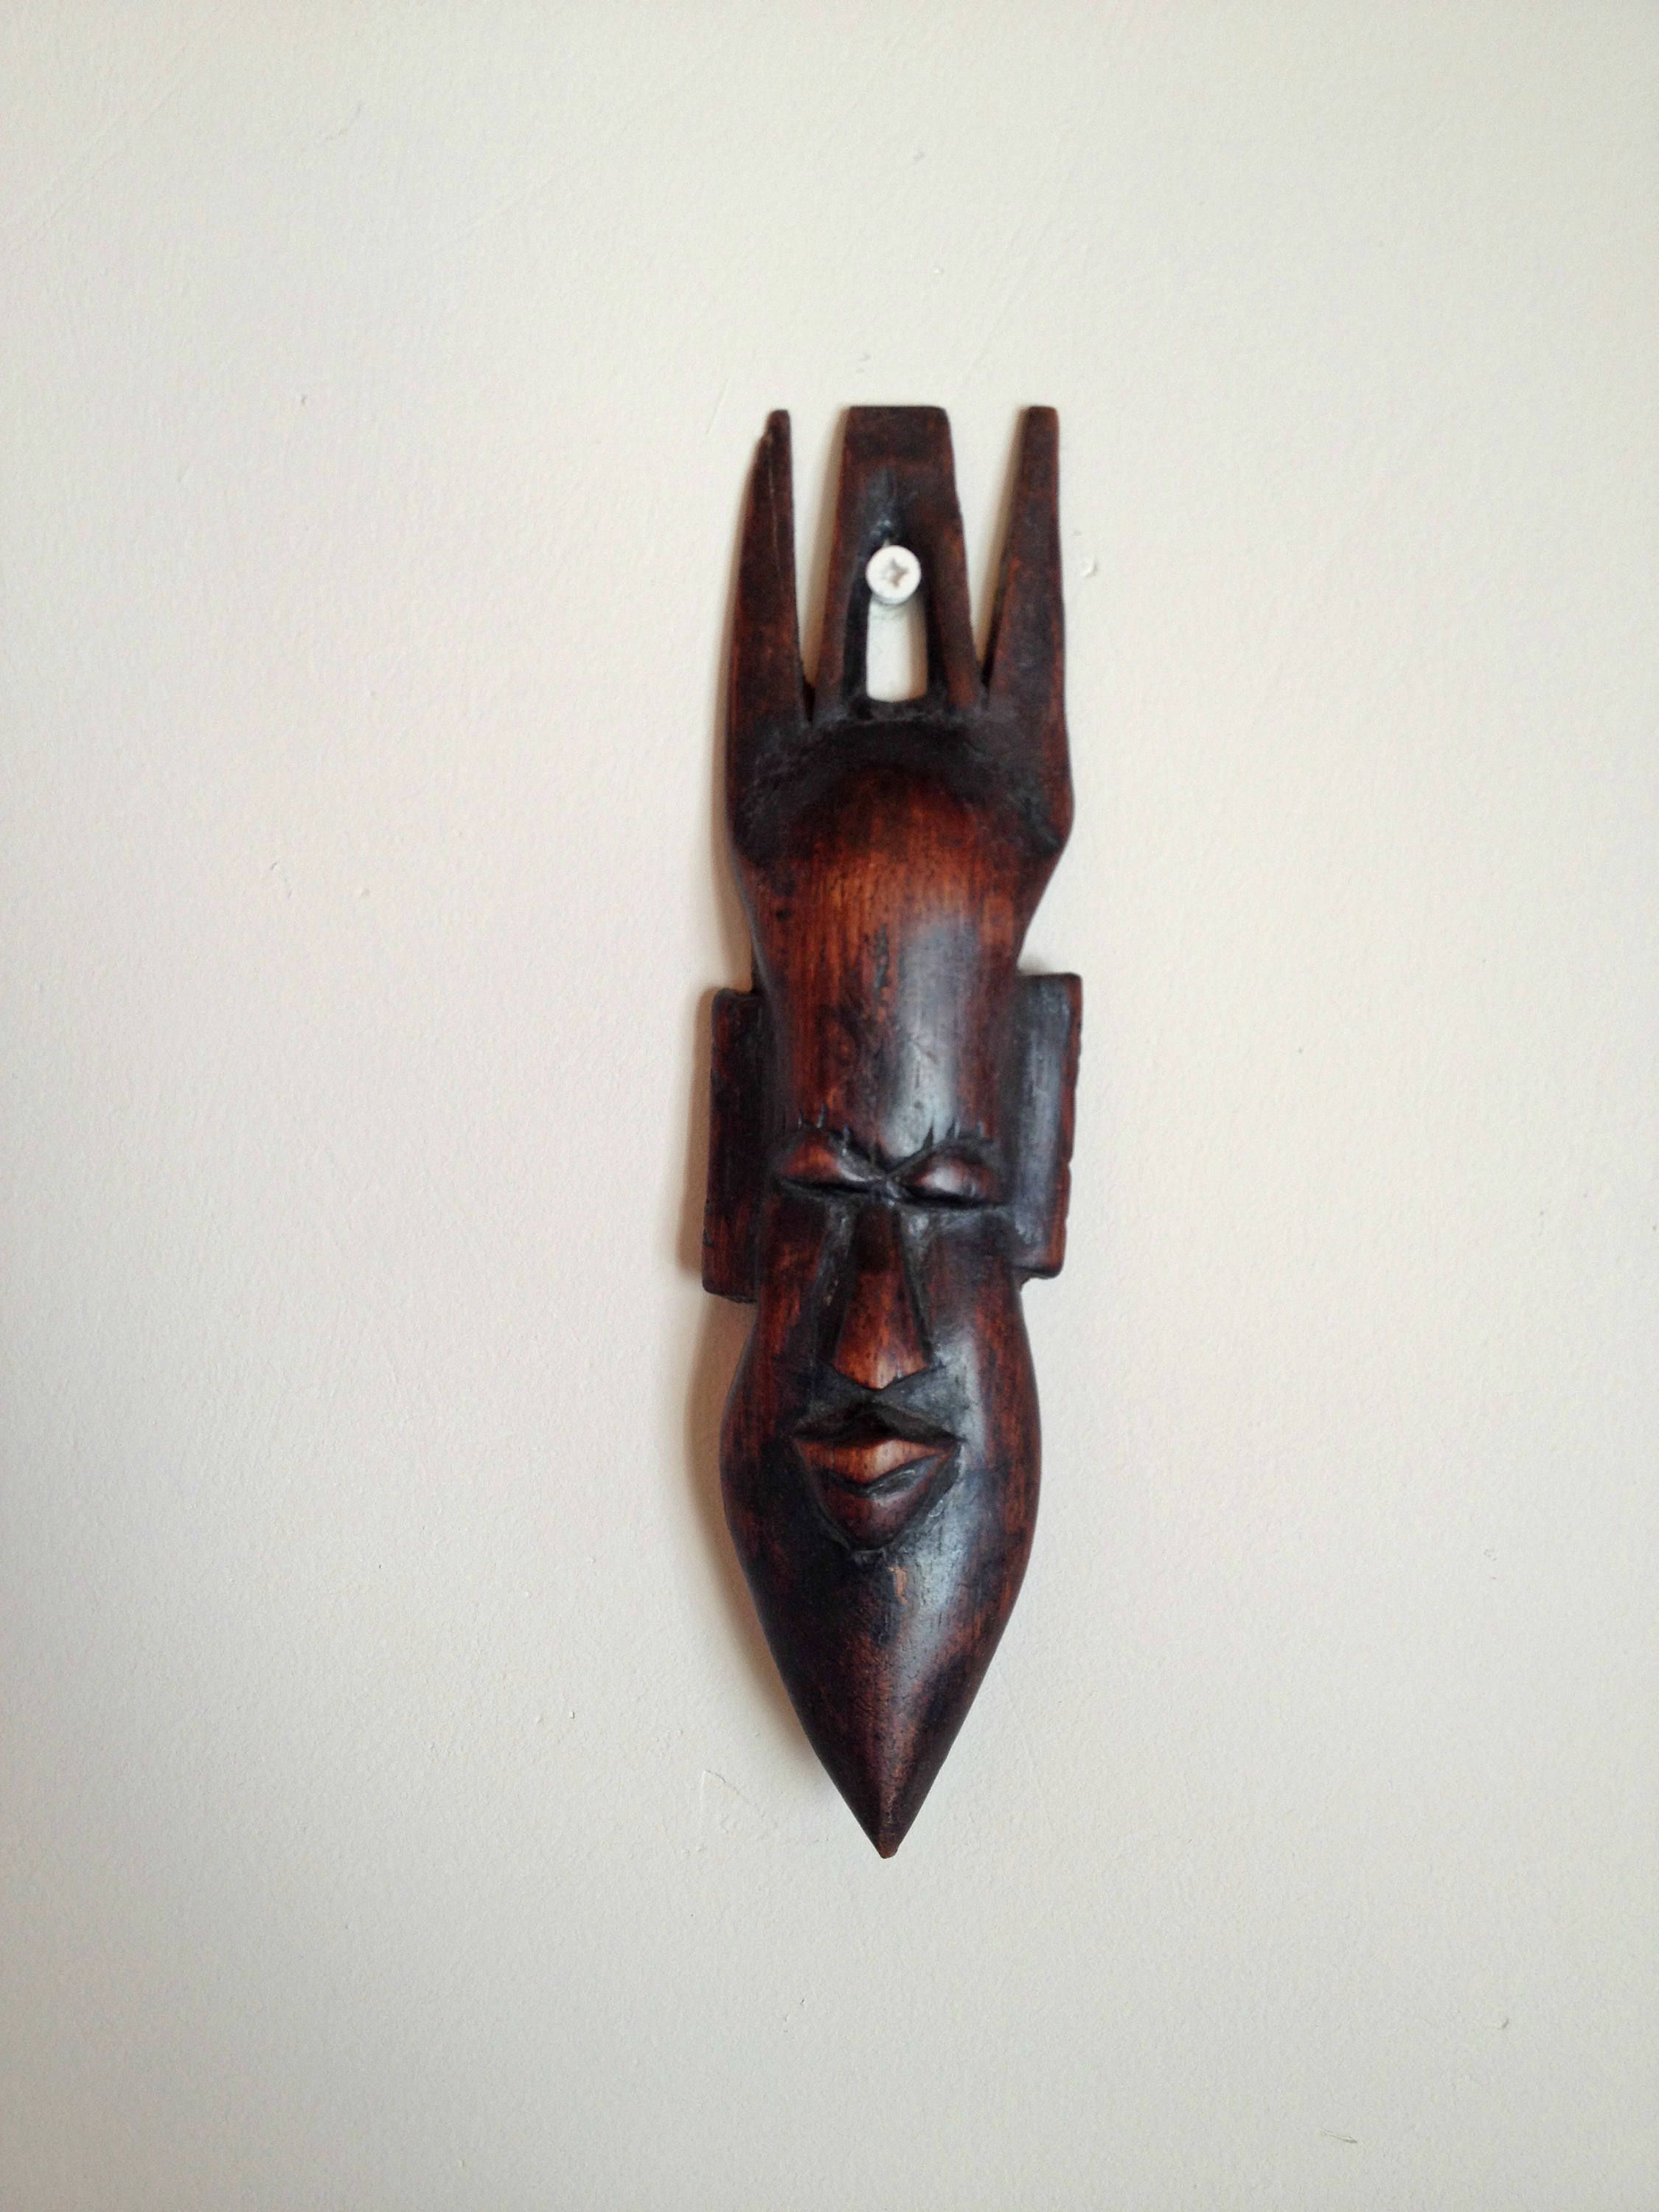 Wall Hanging Tribal Decor African Wooden Wall Decor African Africa Decor Tribal Decor Wooden Wall Decor